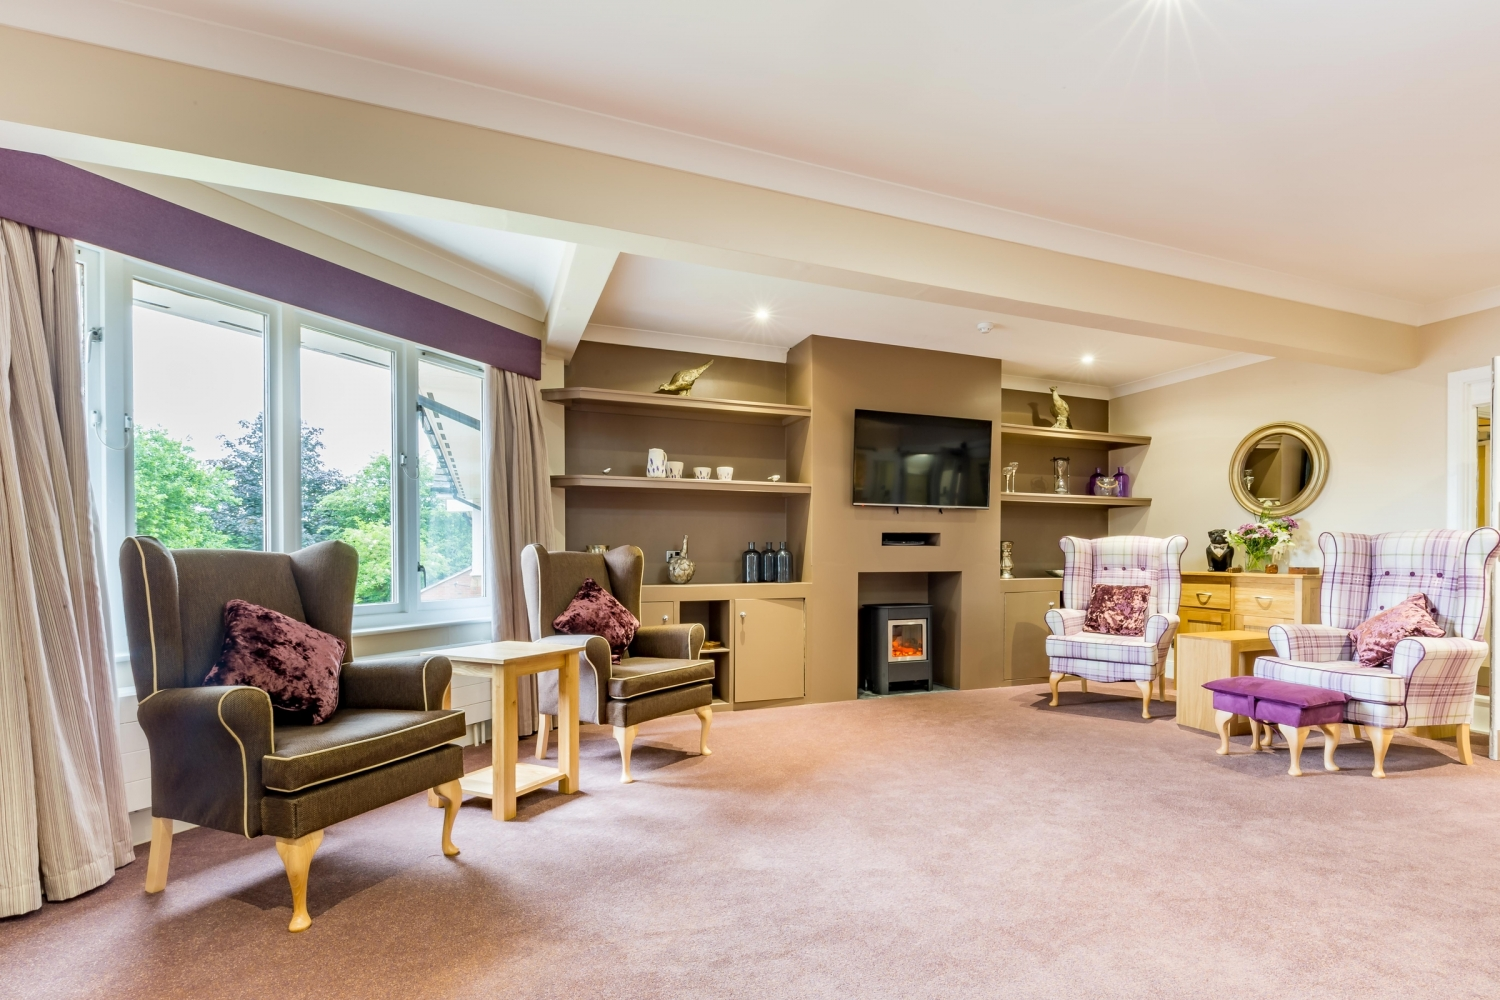 Care Home In Wokingham